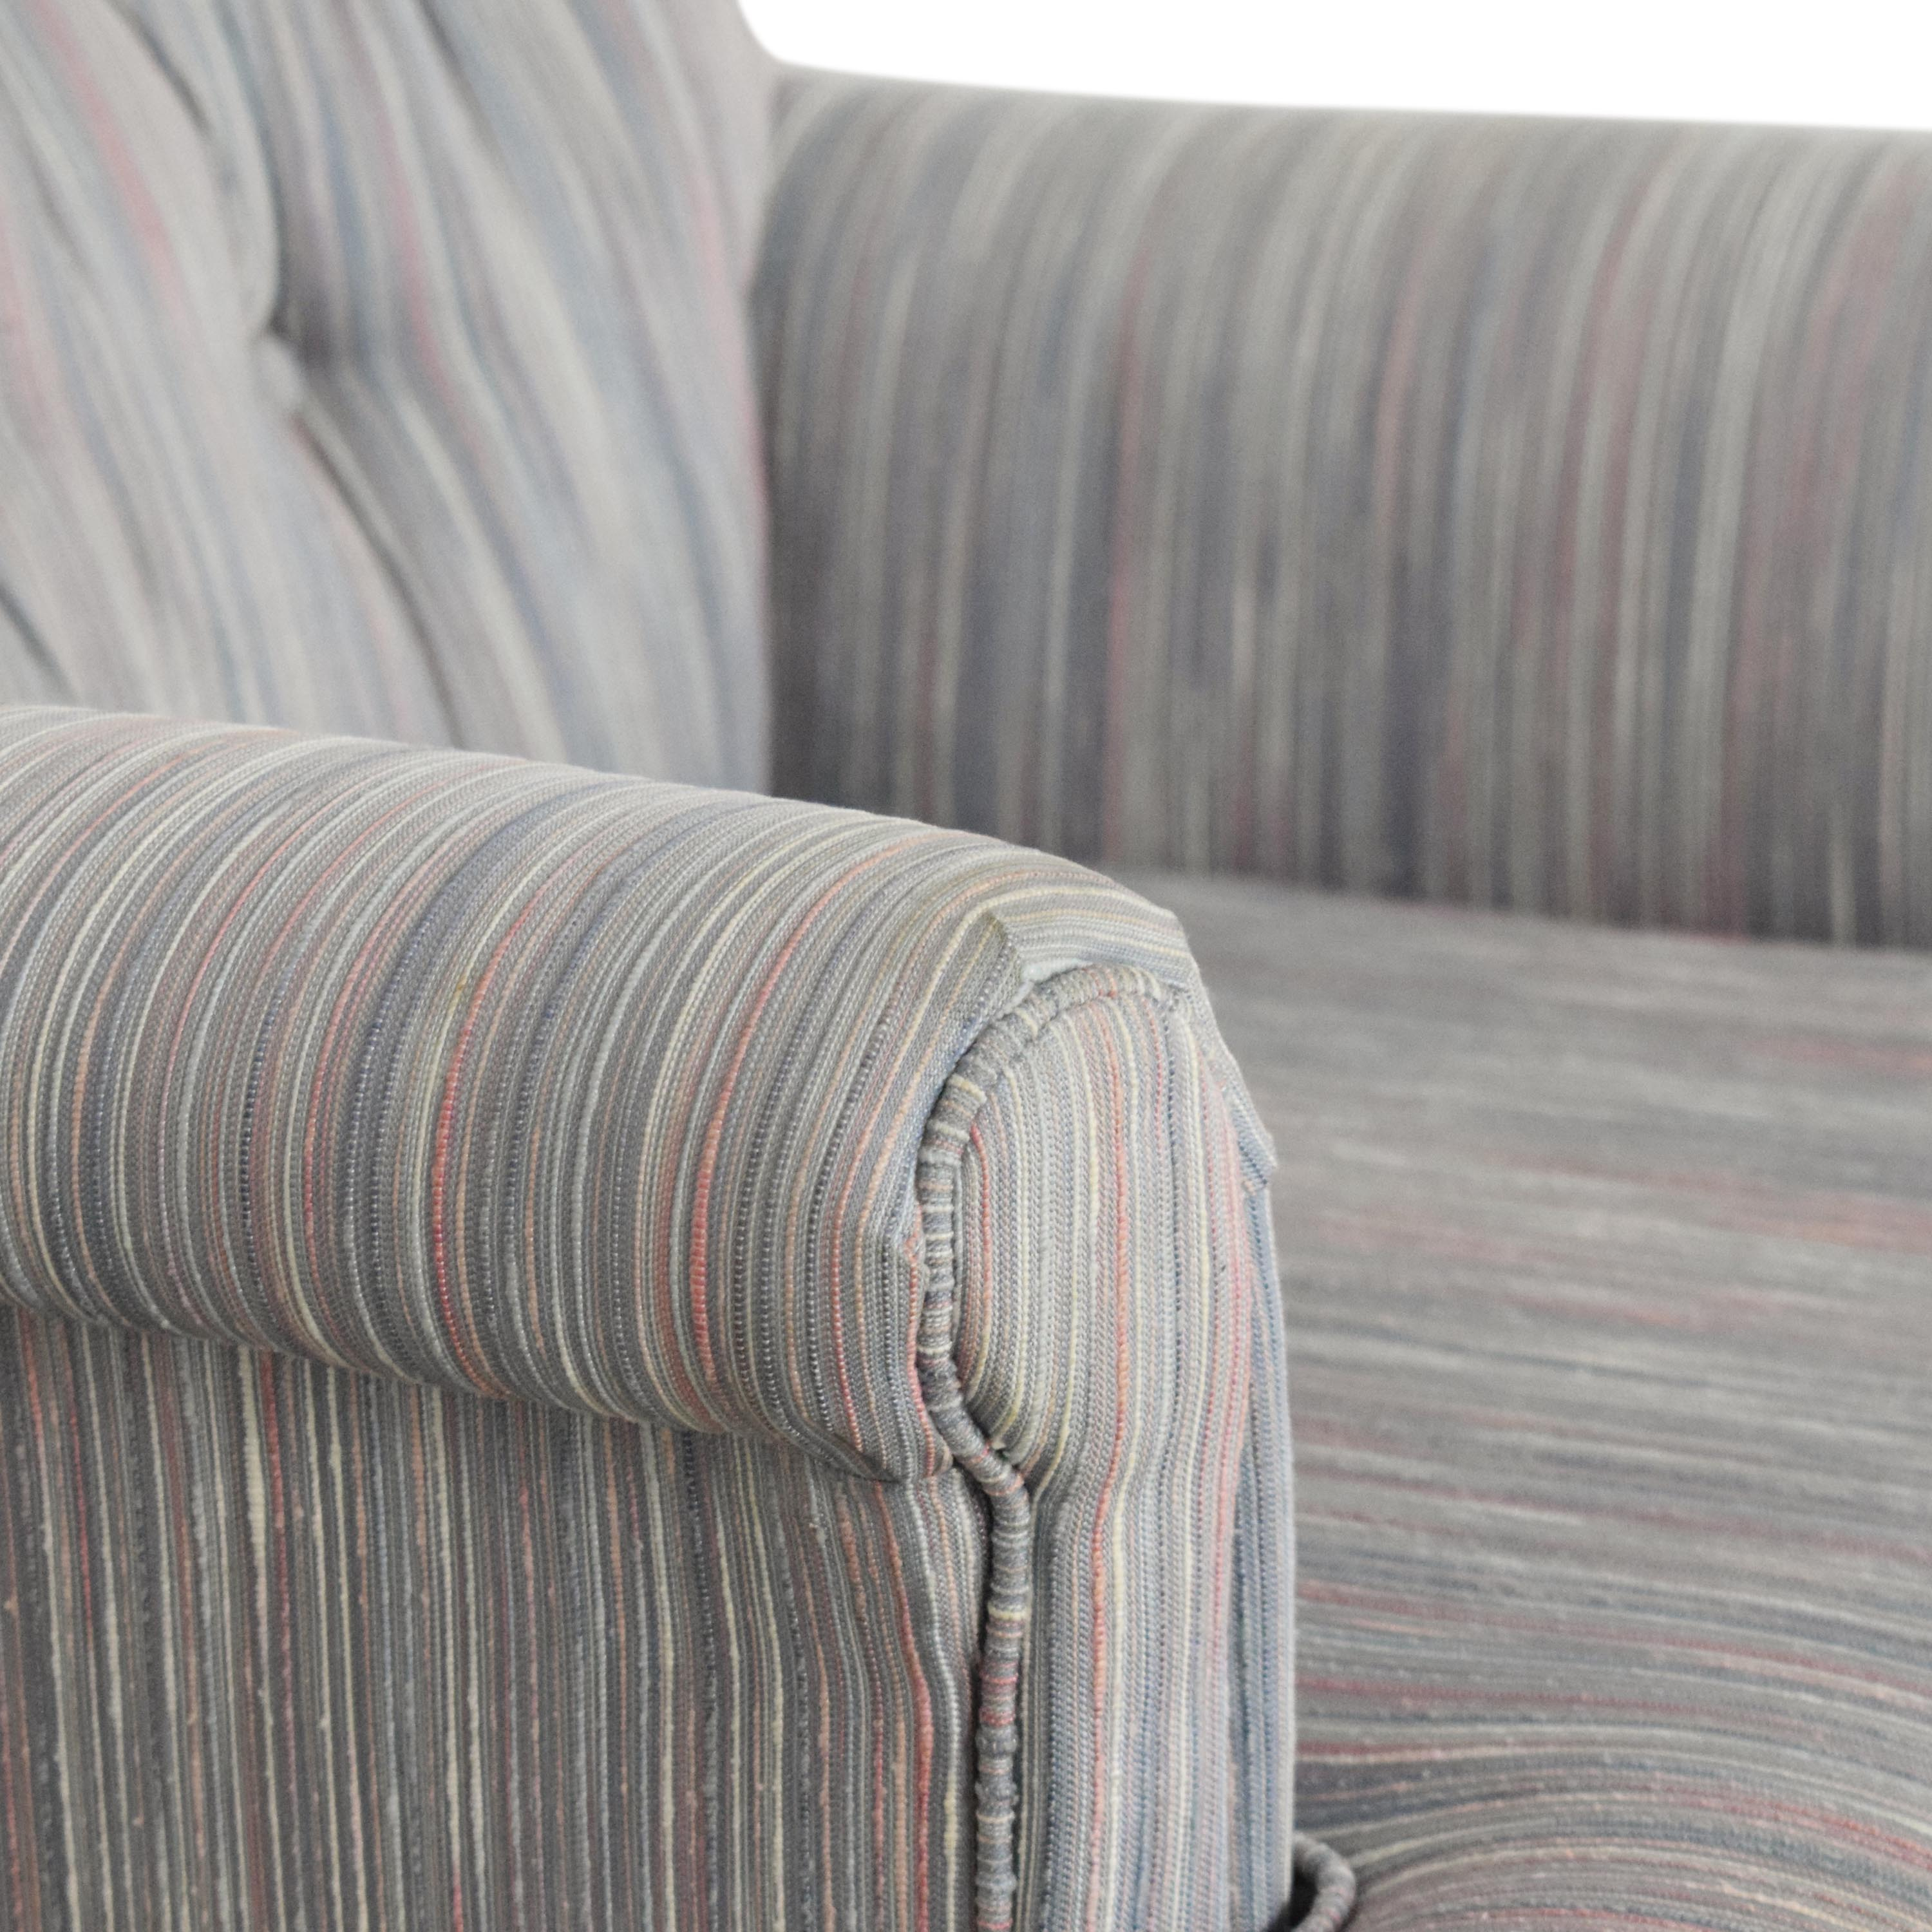 Hickory-Fry Hickory-Fry Tufted Accent Chair nyc